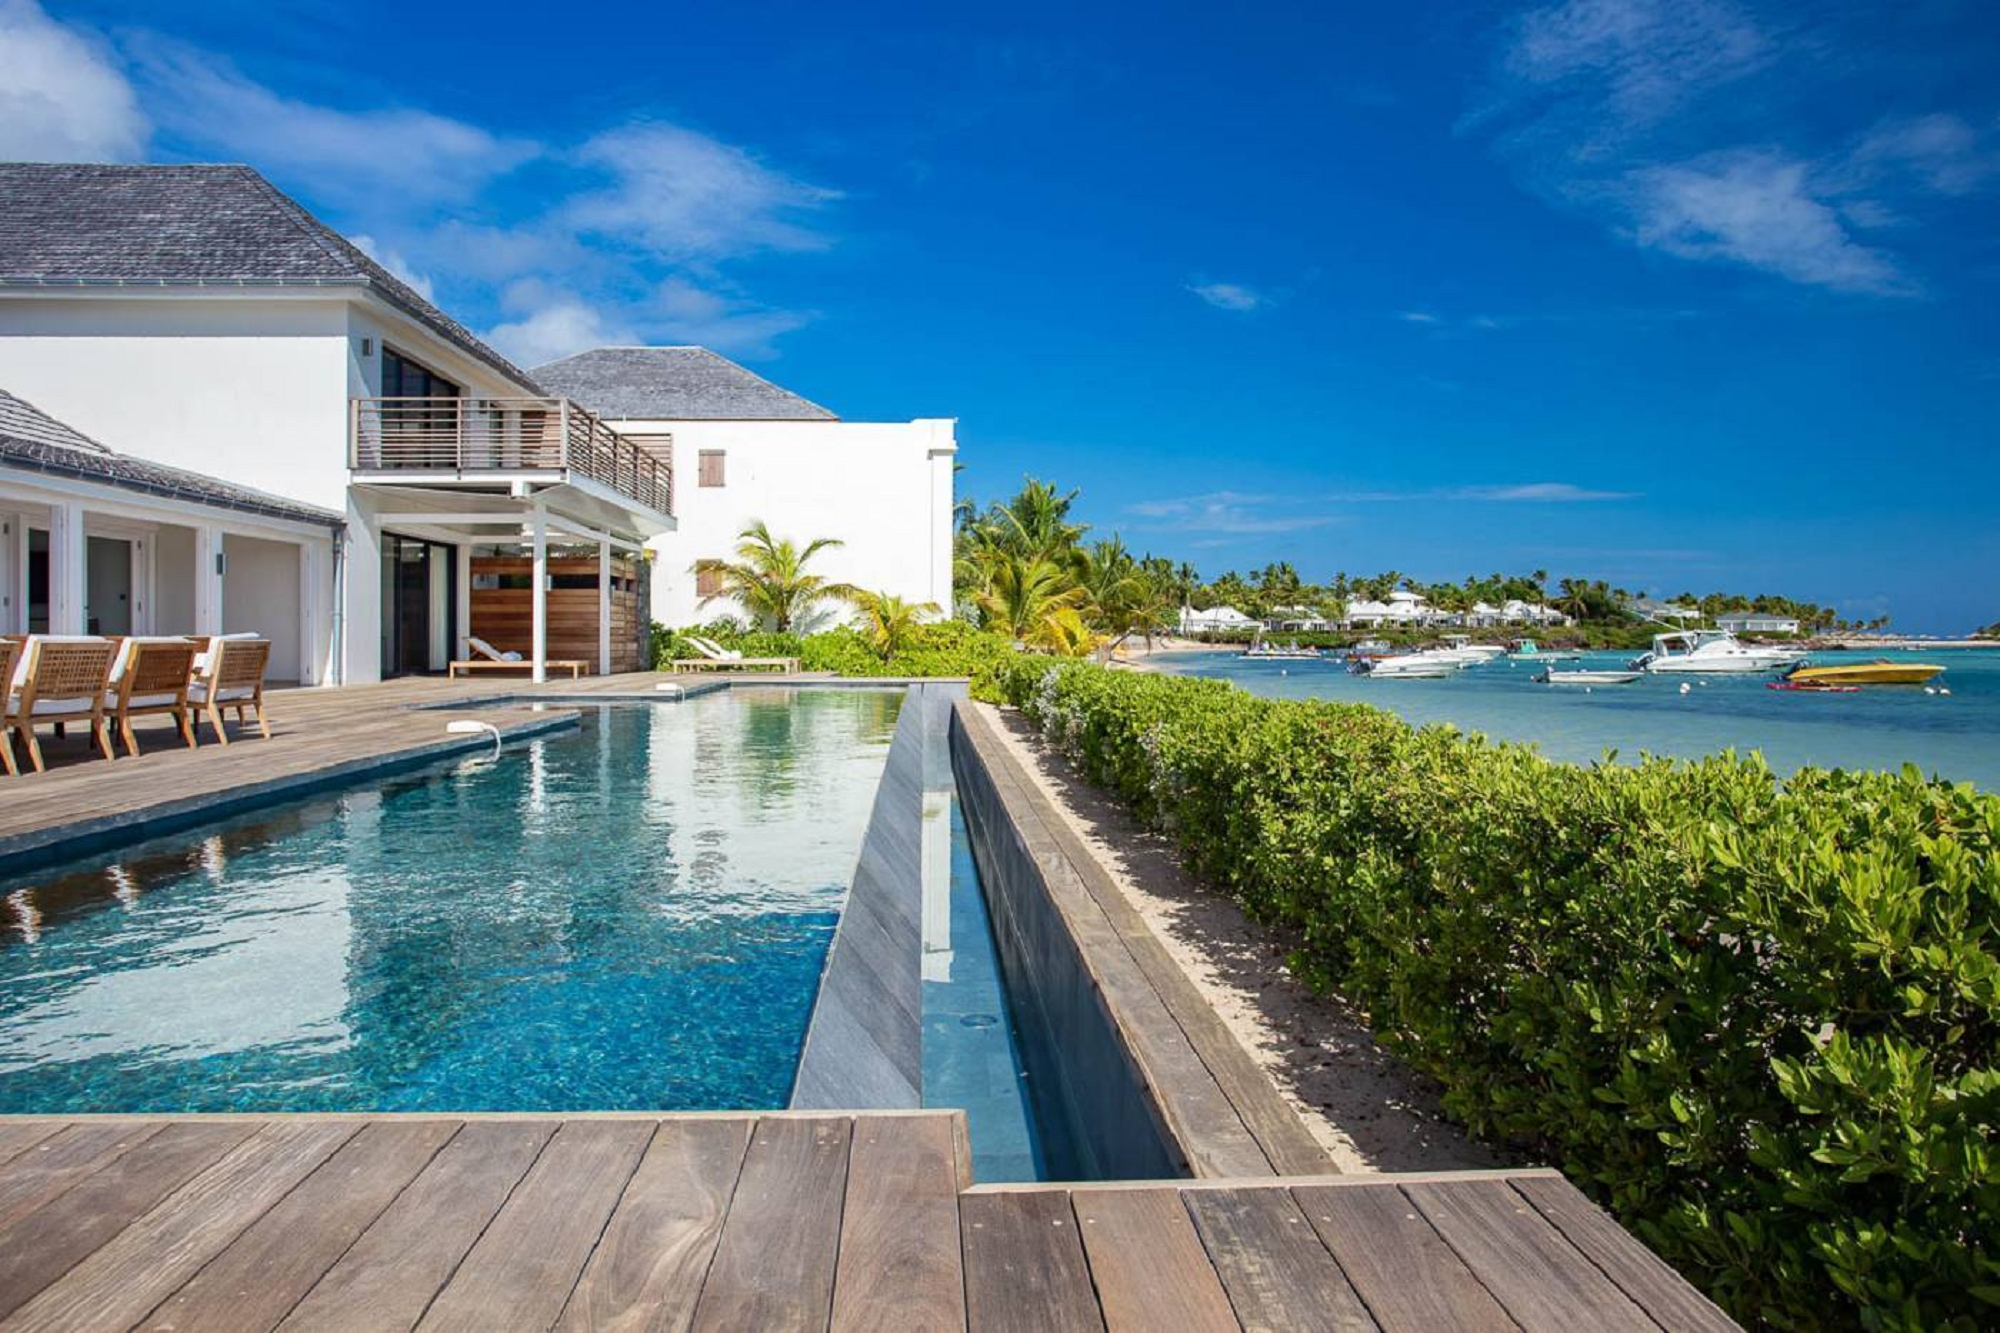 For super rich ultra luxury real estate properties homes, most expensive houses, rent unique penthouse apartment and ultimate villa in St Barth - Grand Cul de Sac St Barth St. Barthélemy for rent holiday